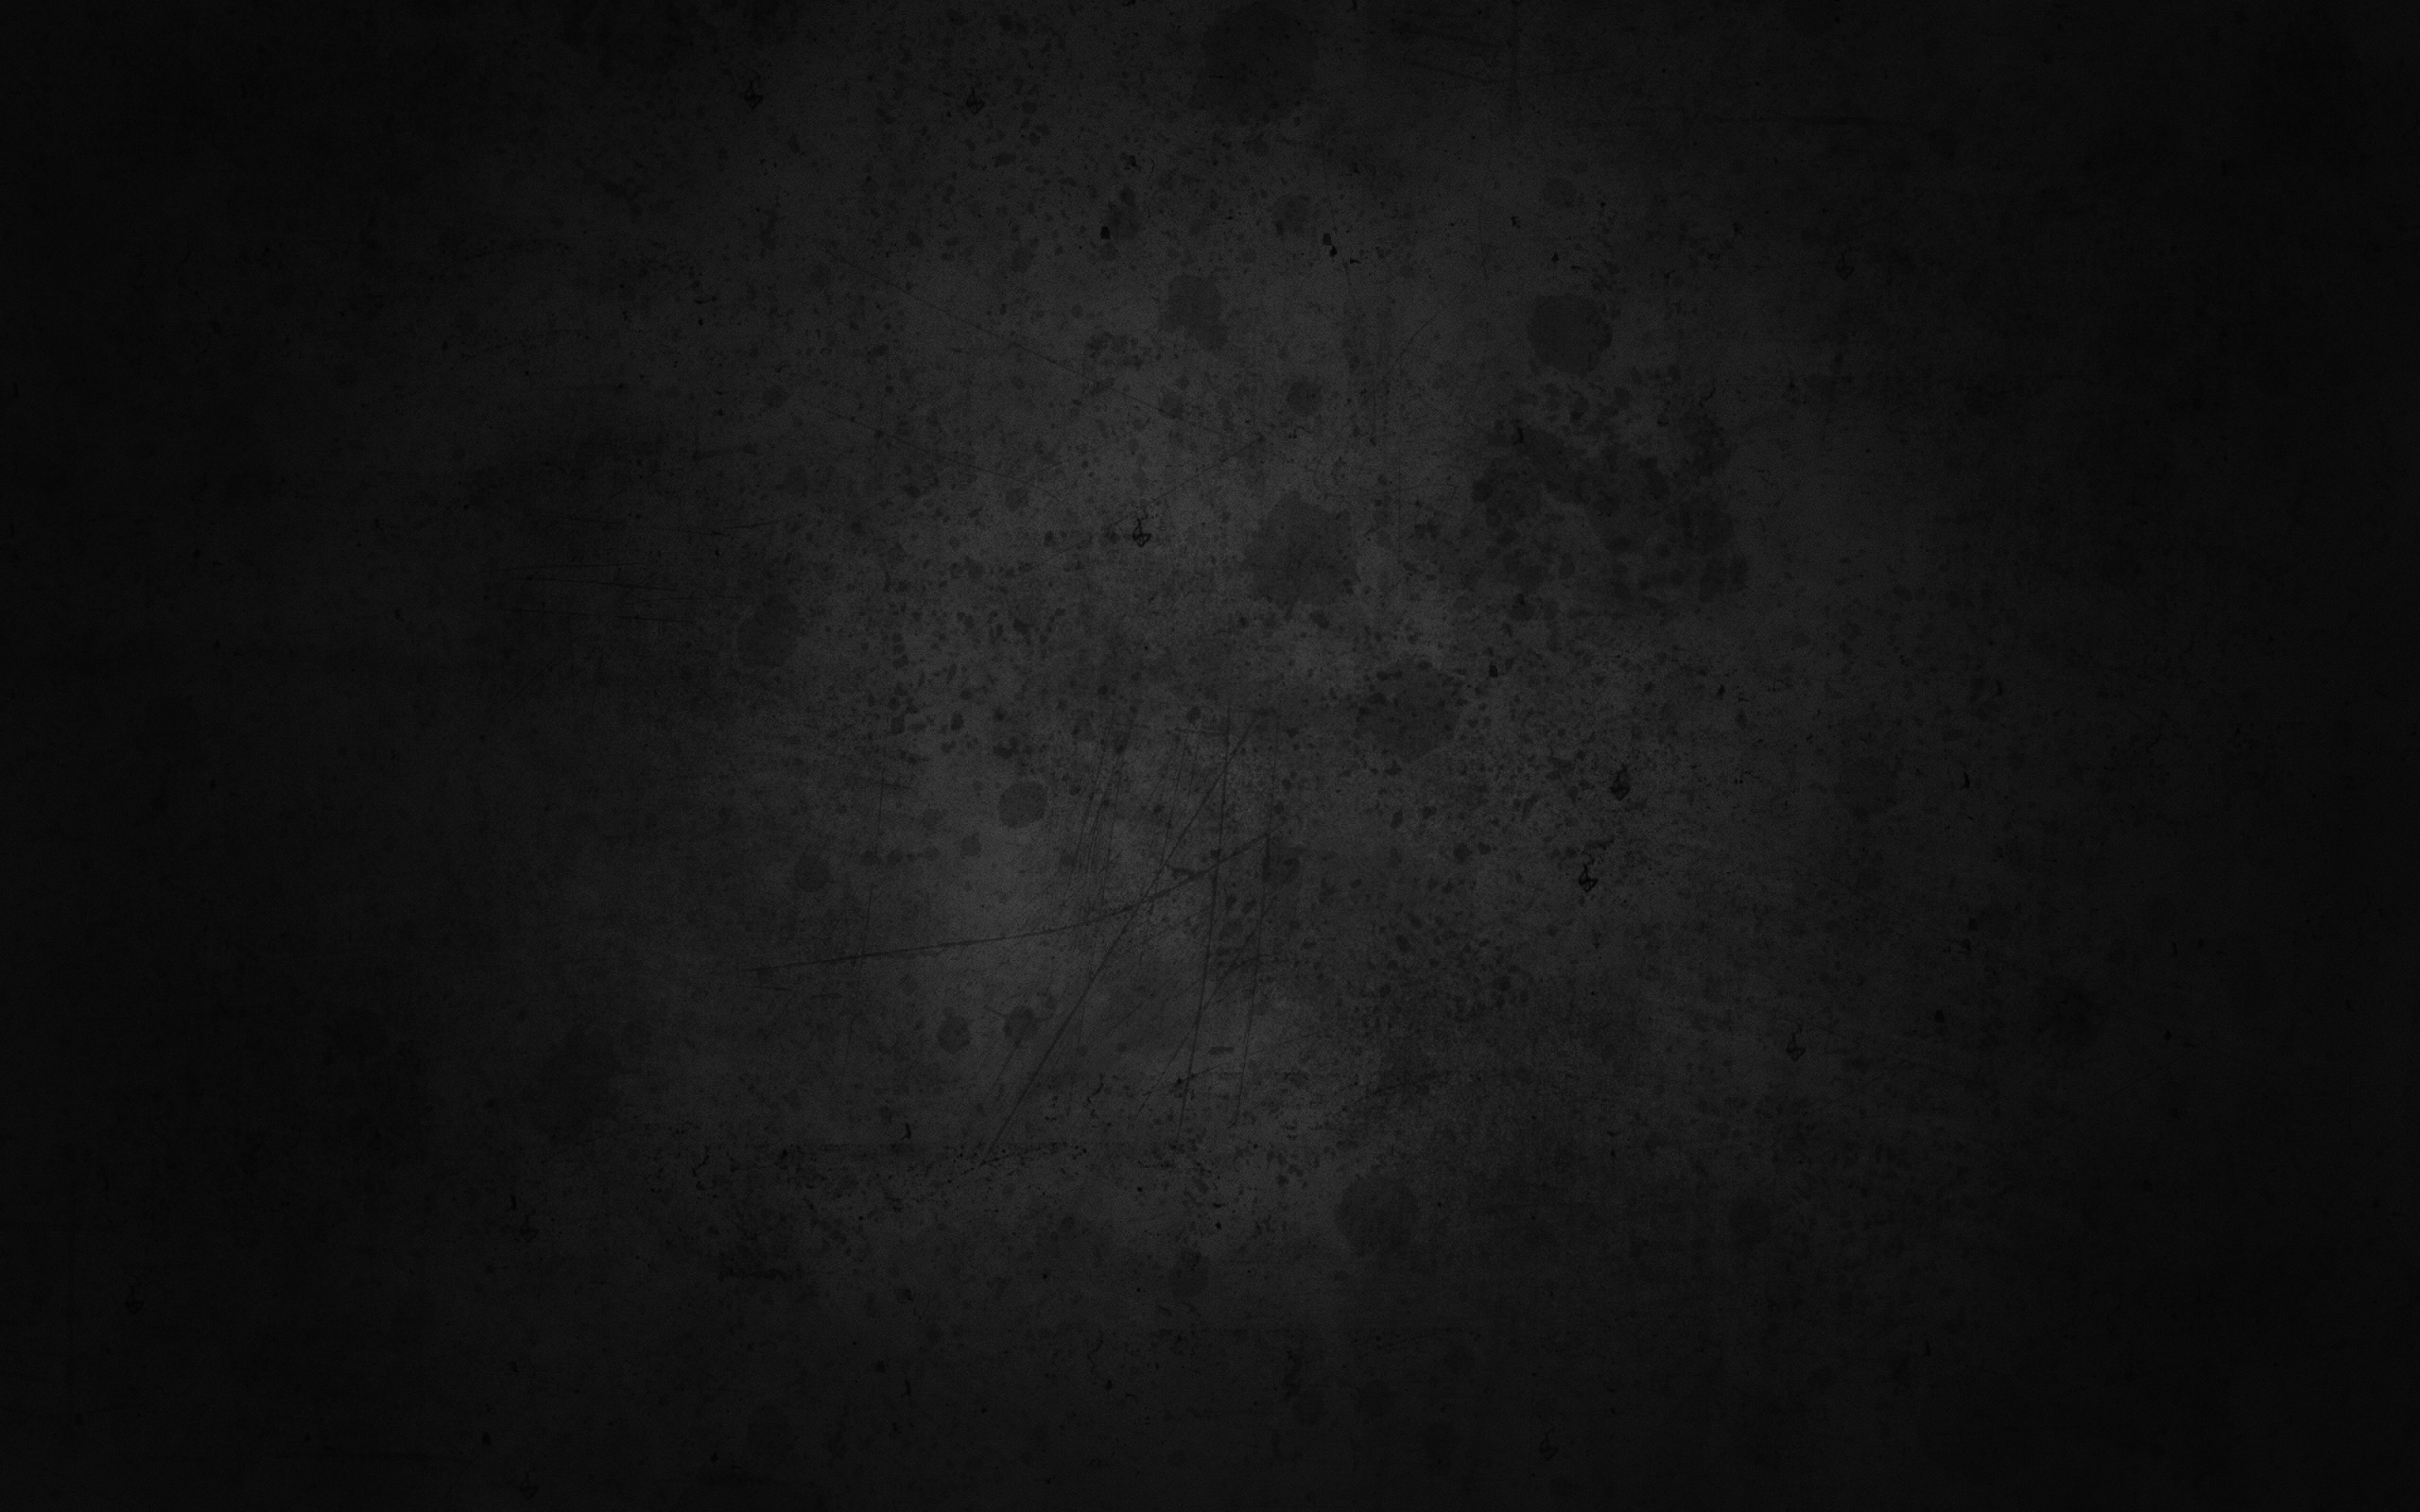 Plain White Wallpapers Hd 66 Images